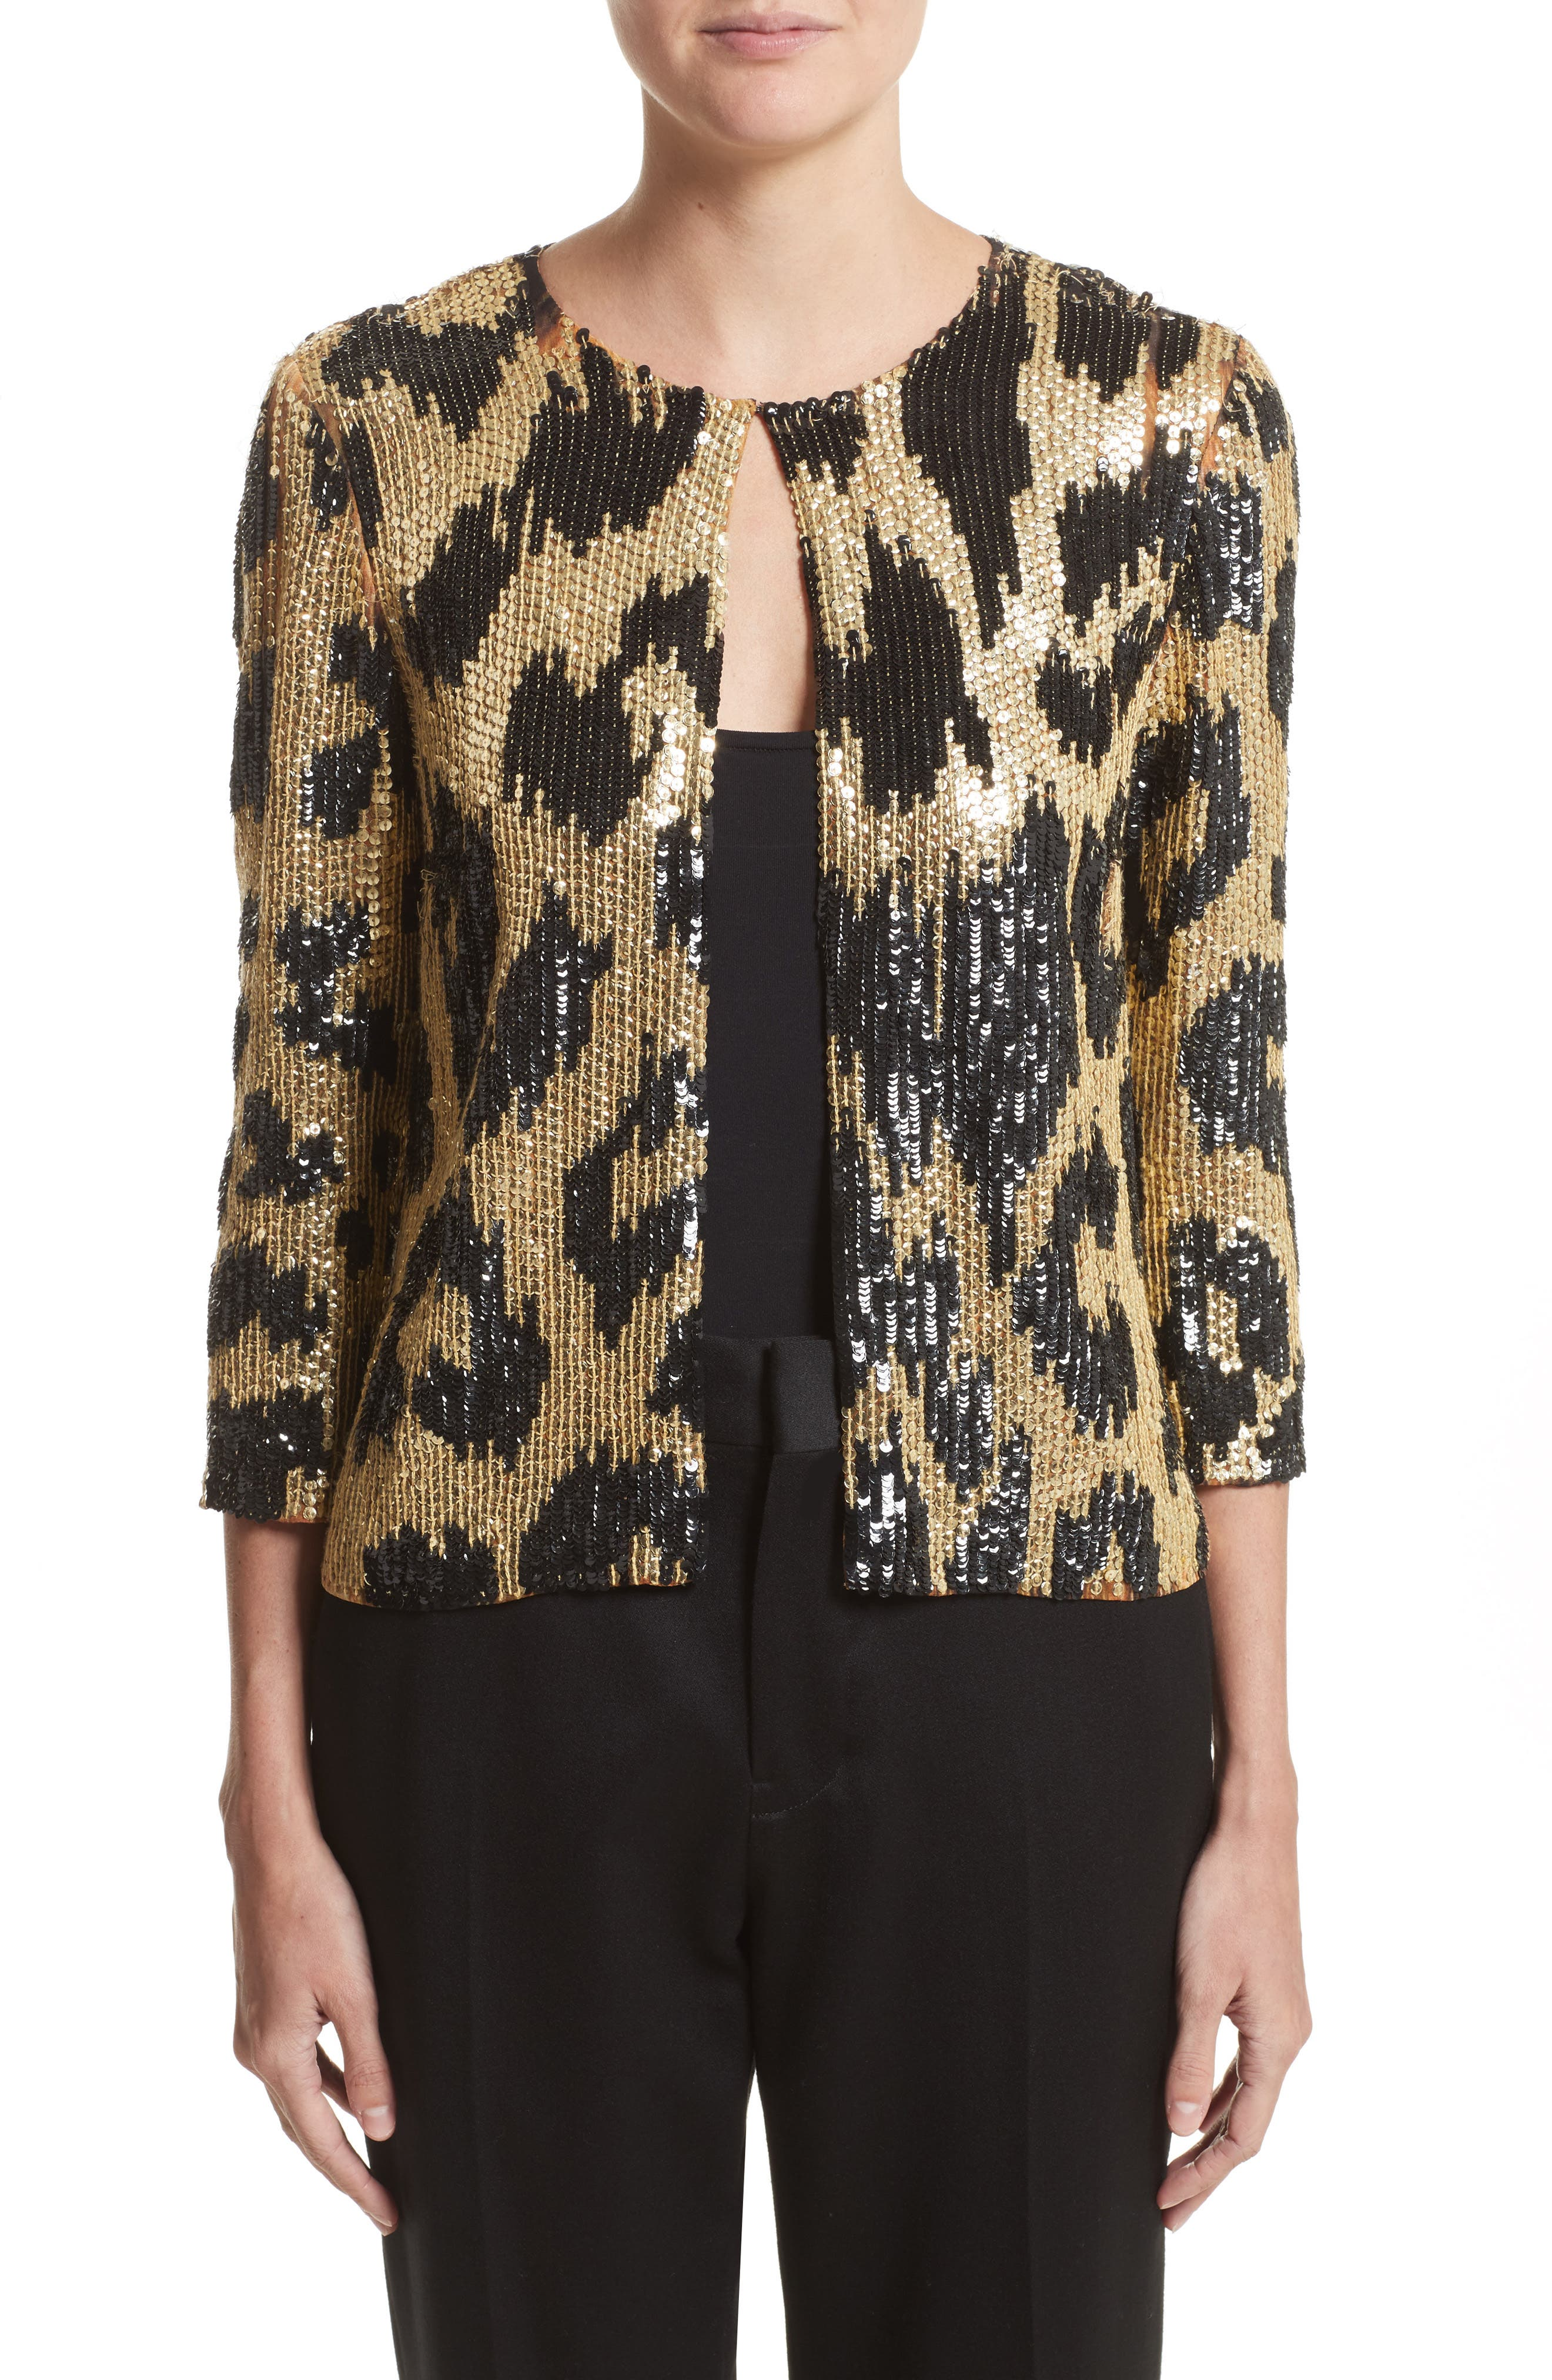 Naeem Khan Cheetah Print Sequin Jacket